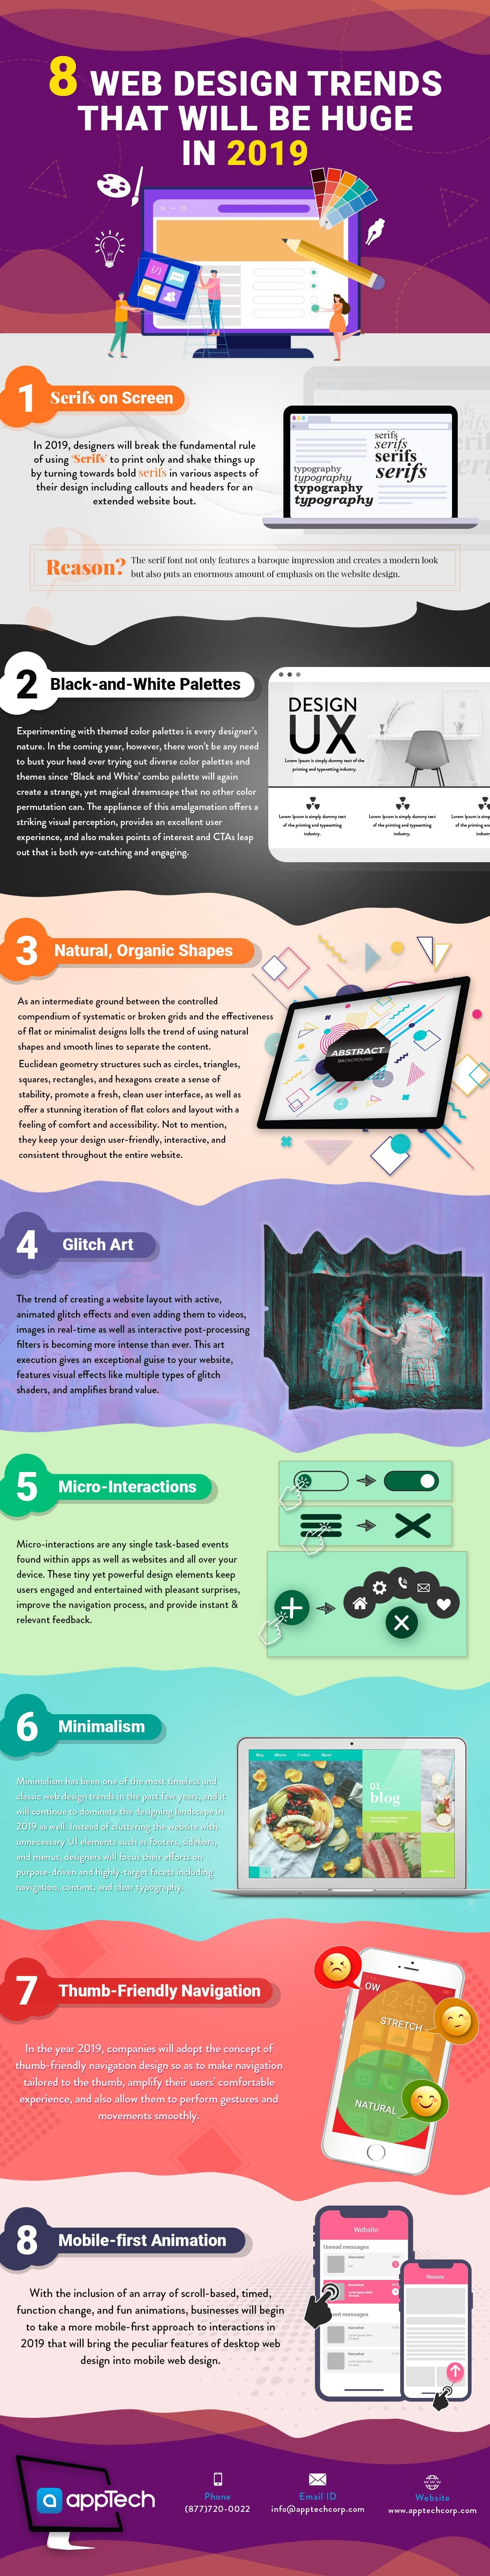 8 Trends Bound to Shape the Web Design Industry in 2019 #infographic